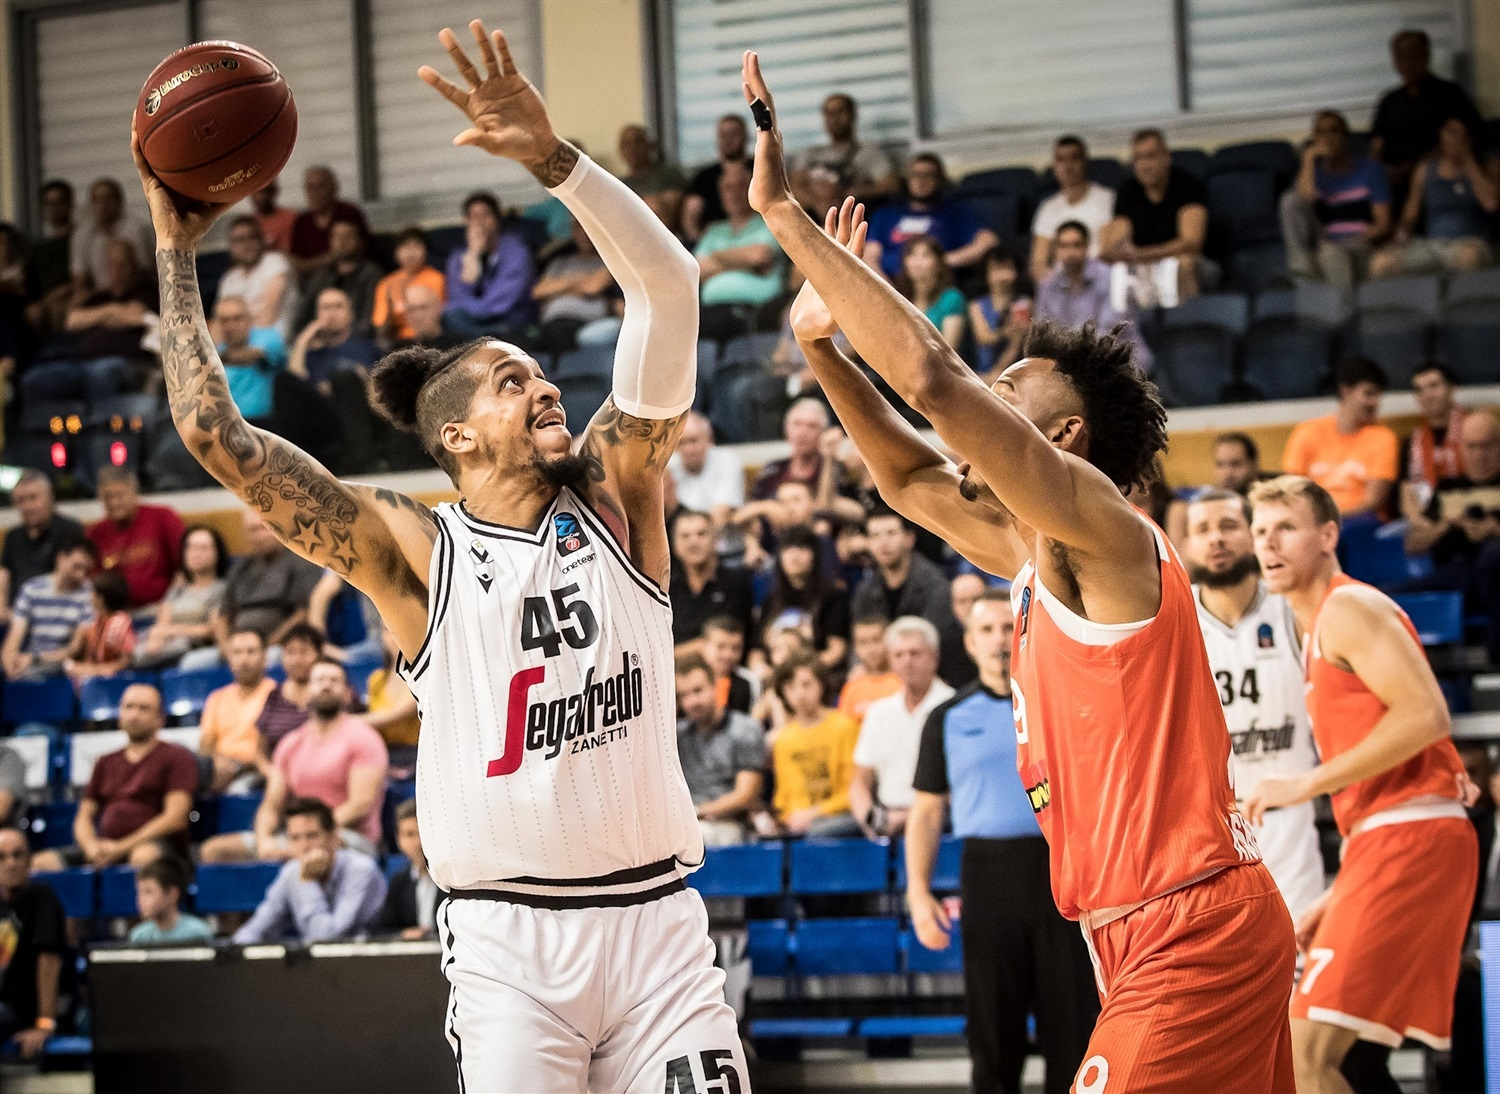 Julian Gamble - Segafredo Virtus Bologna (photo Rishon) - EC19